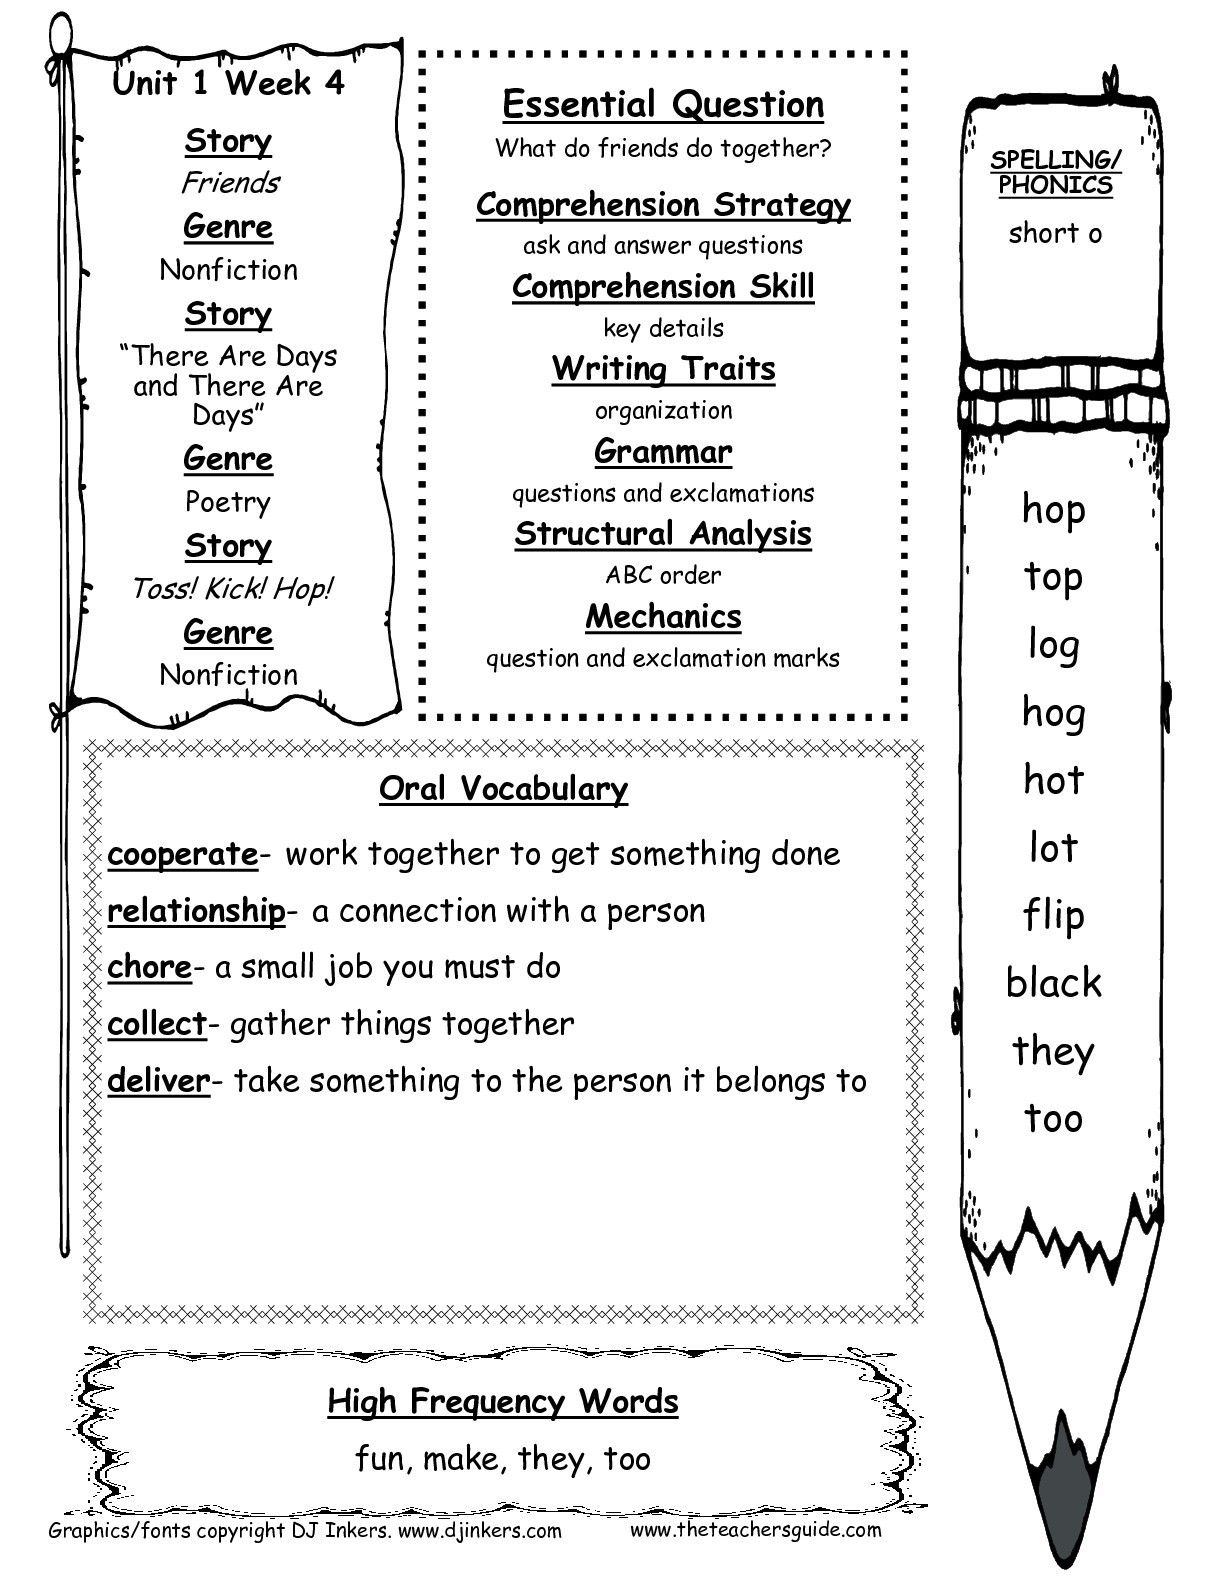 Hyperbole Worksheet 1 Answers